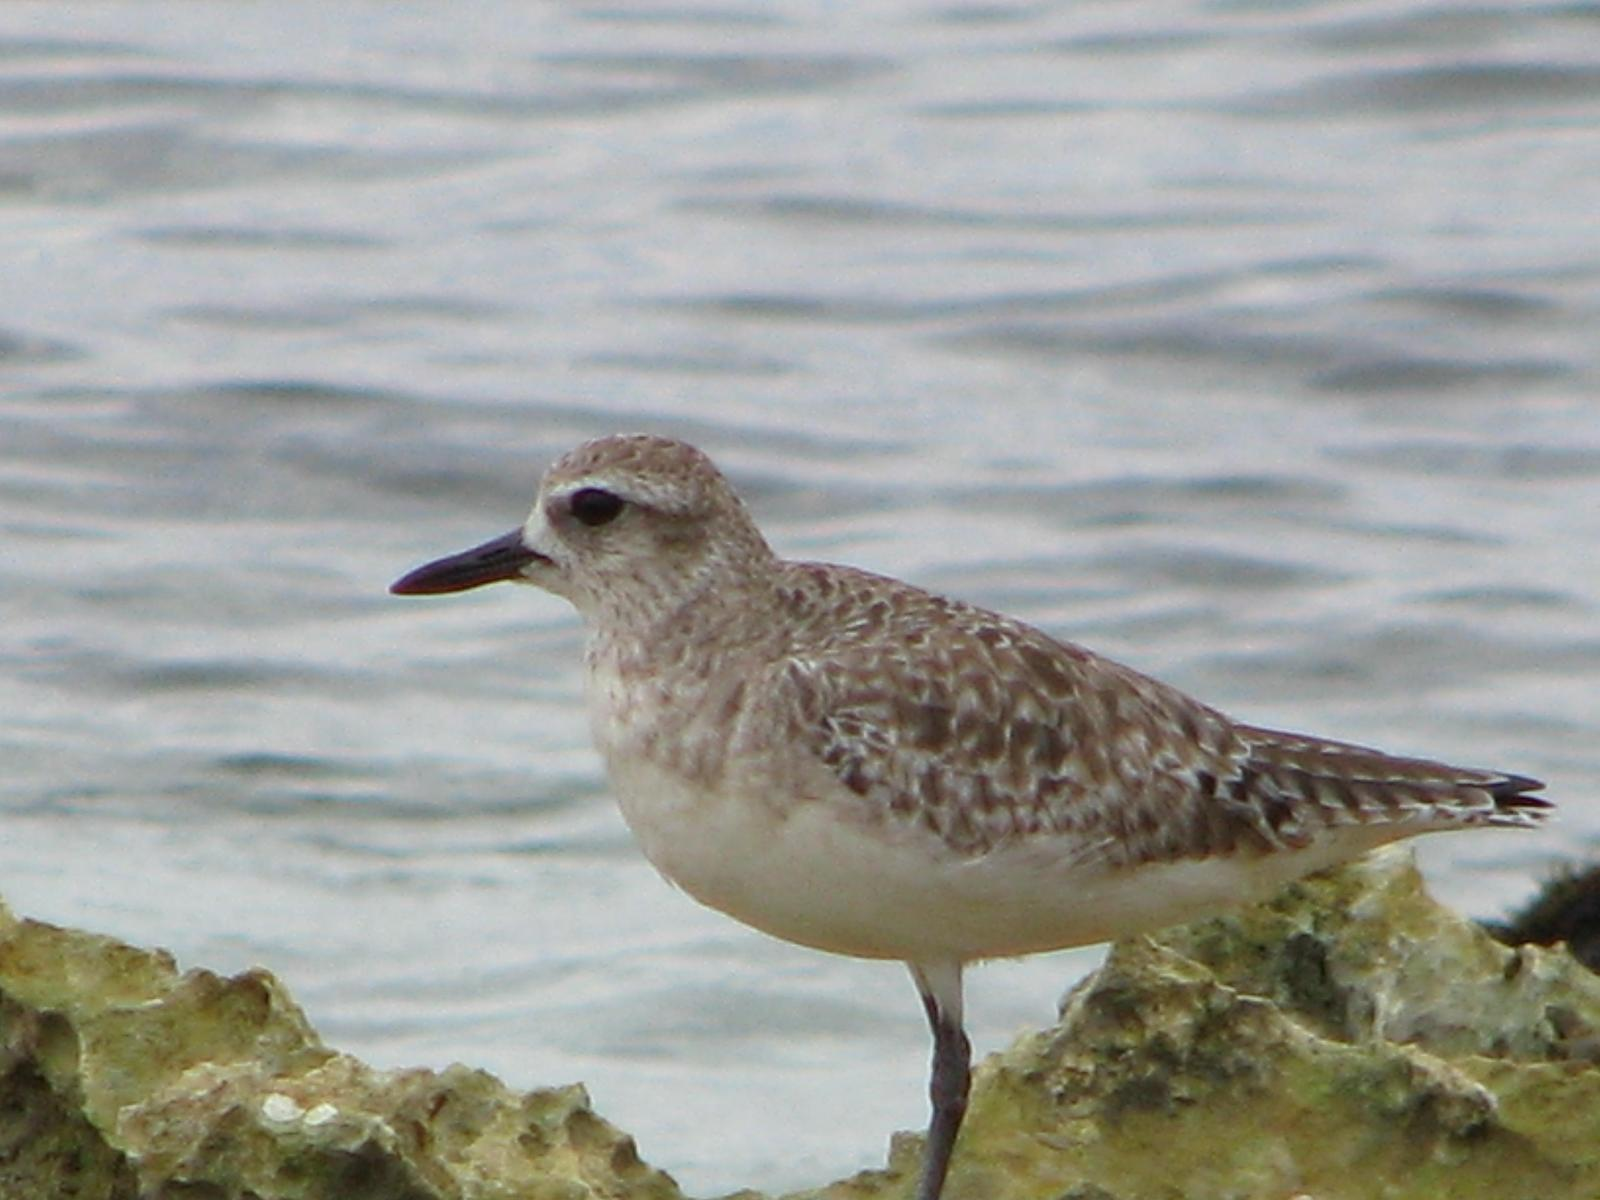 Black-bellied Plover Photo by Ted Goshulak